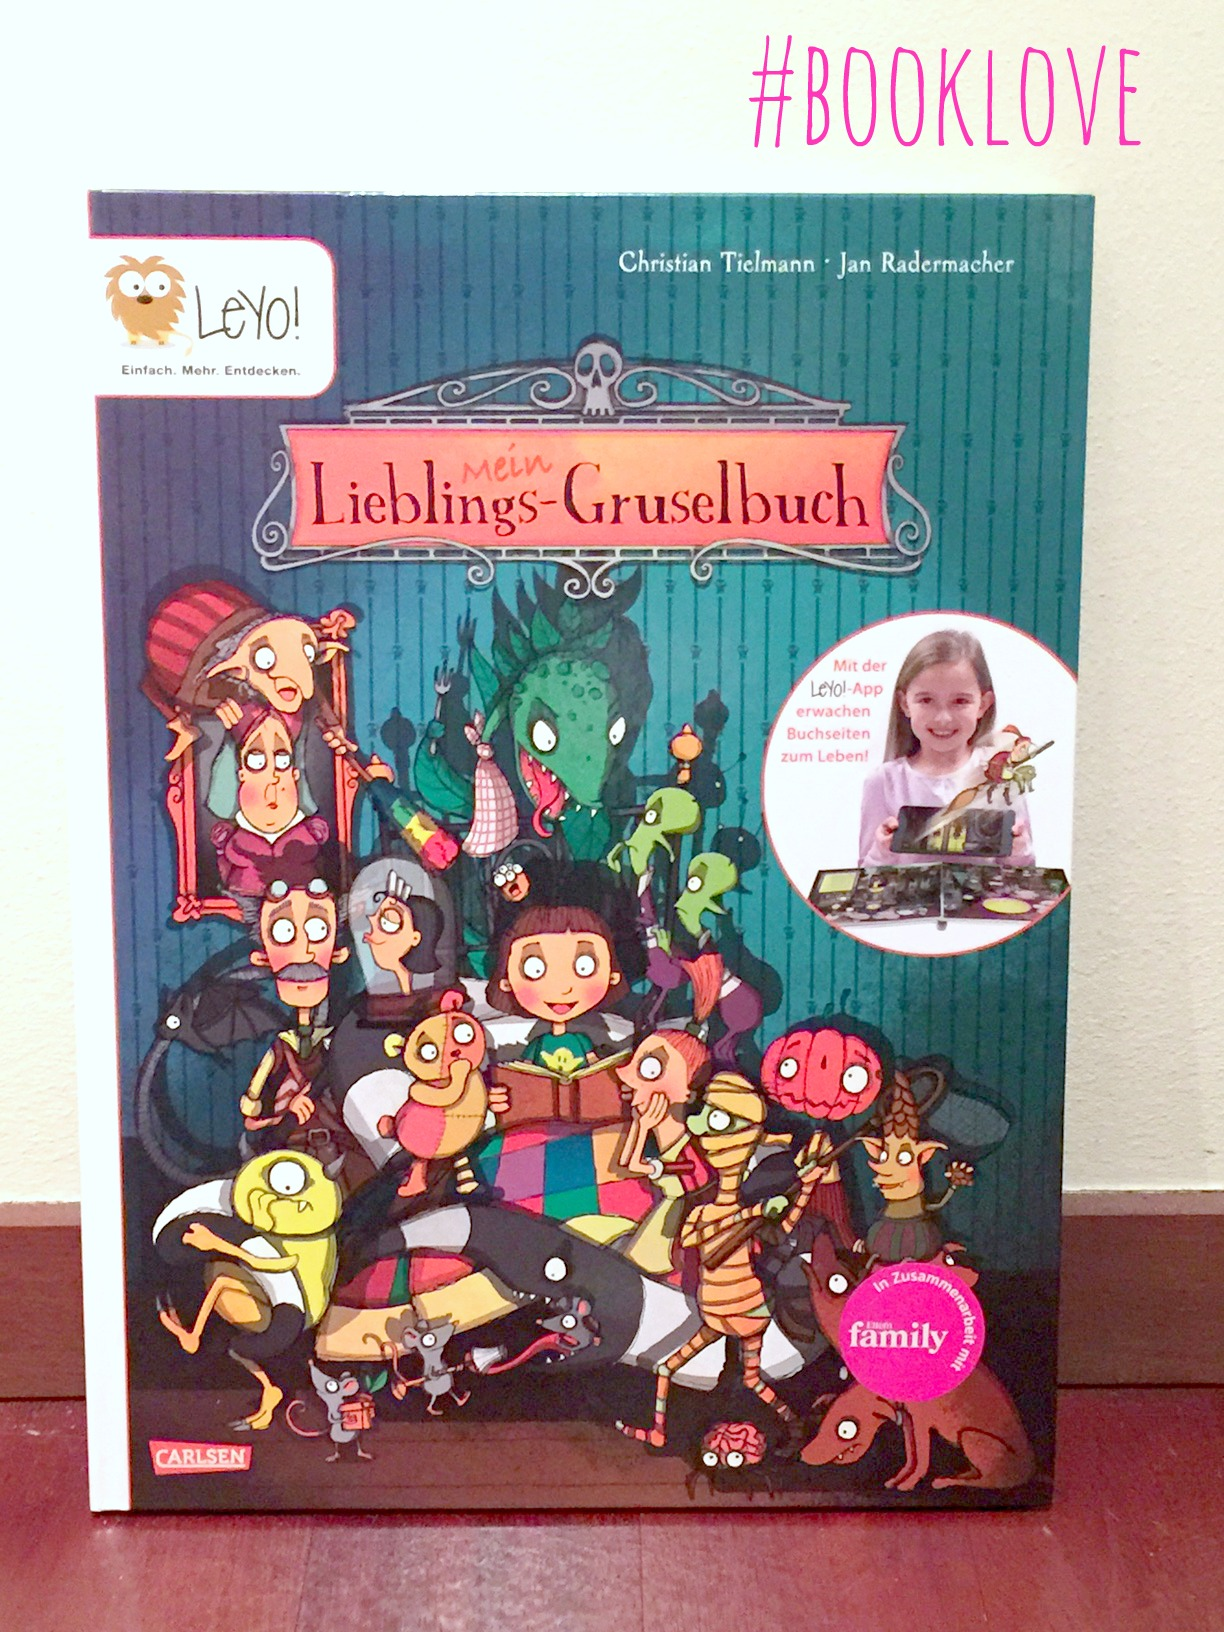 Leyo App, Test, Collage, Booklove, Buchrezension, Kinderbuch, Carlsen Verlag